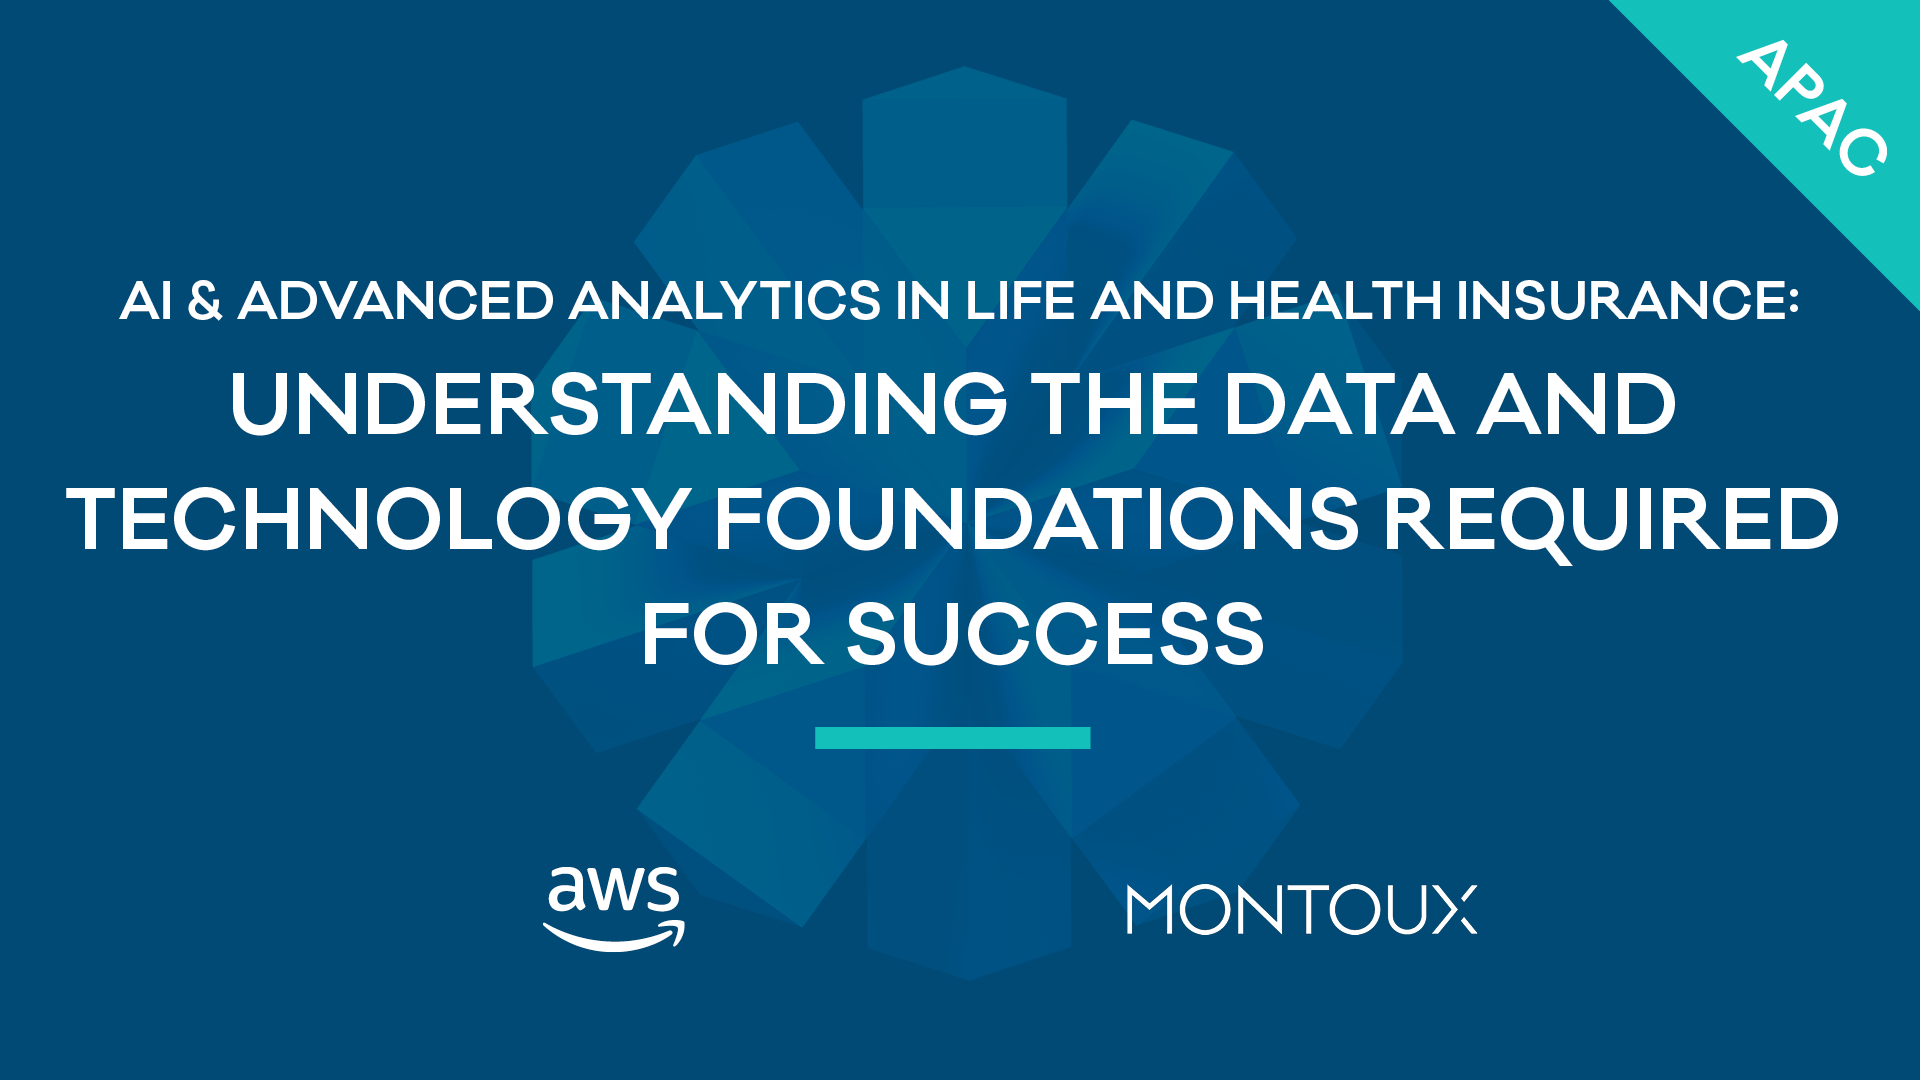 AI and advanced analytics in life and health insurance:Understanding the data and technology foundations required for success